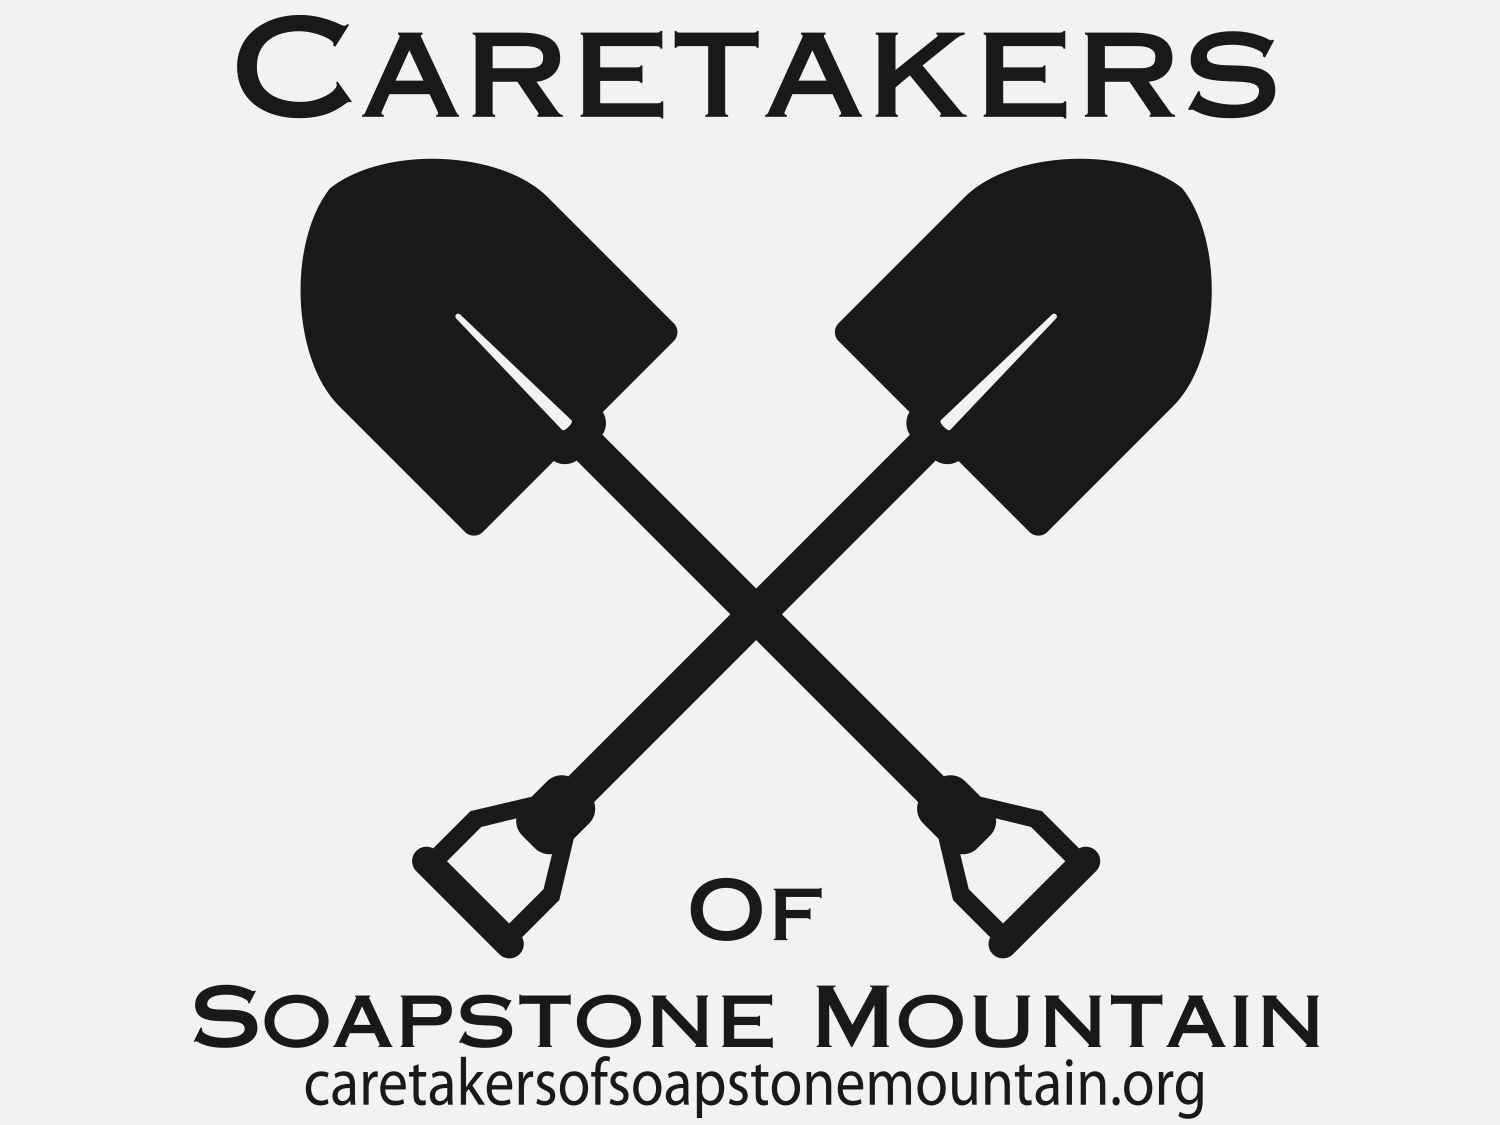 Caretakers of Soapstone Mountain